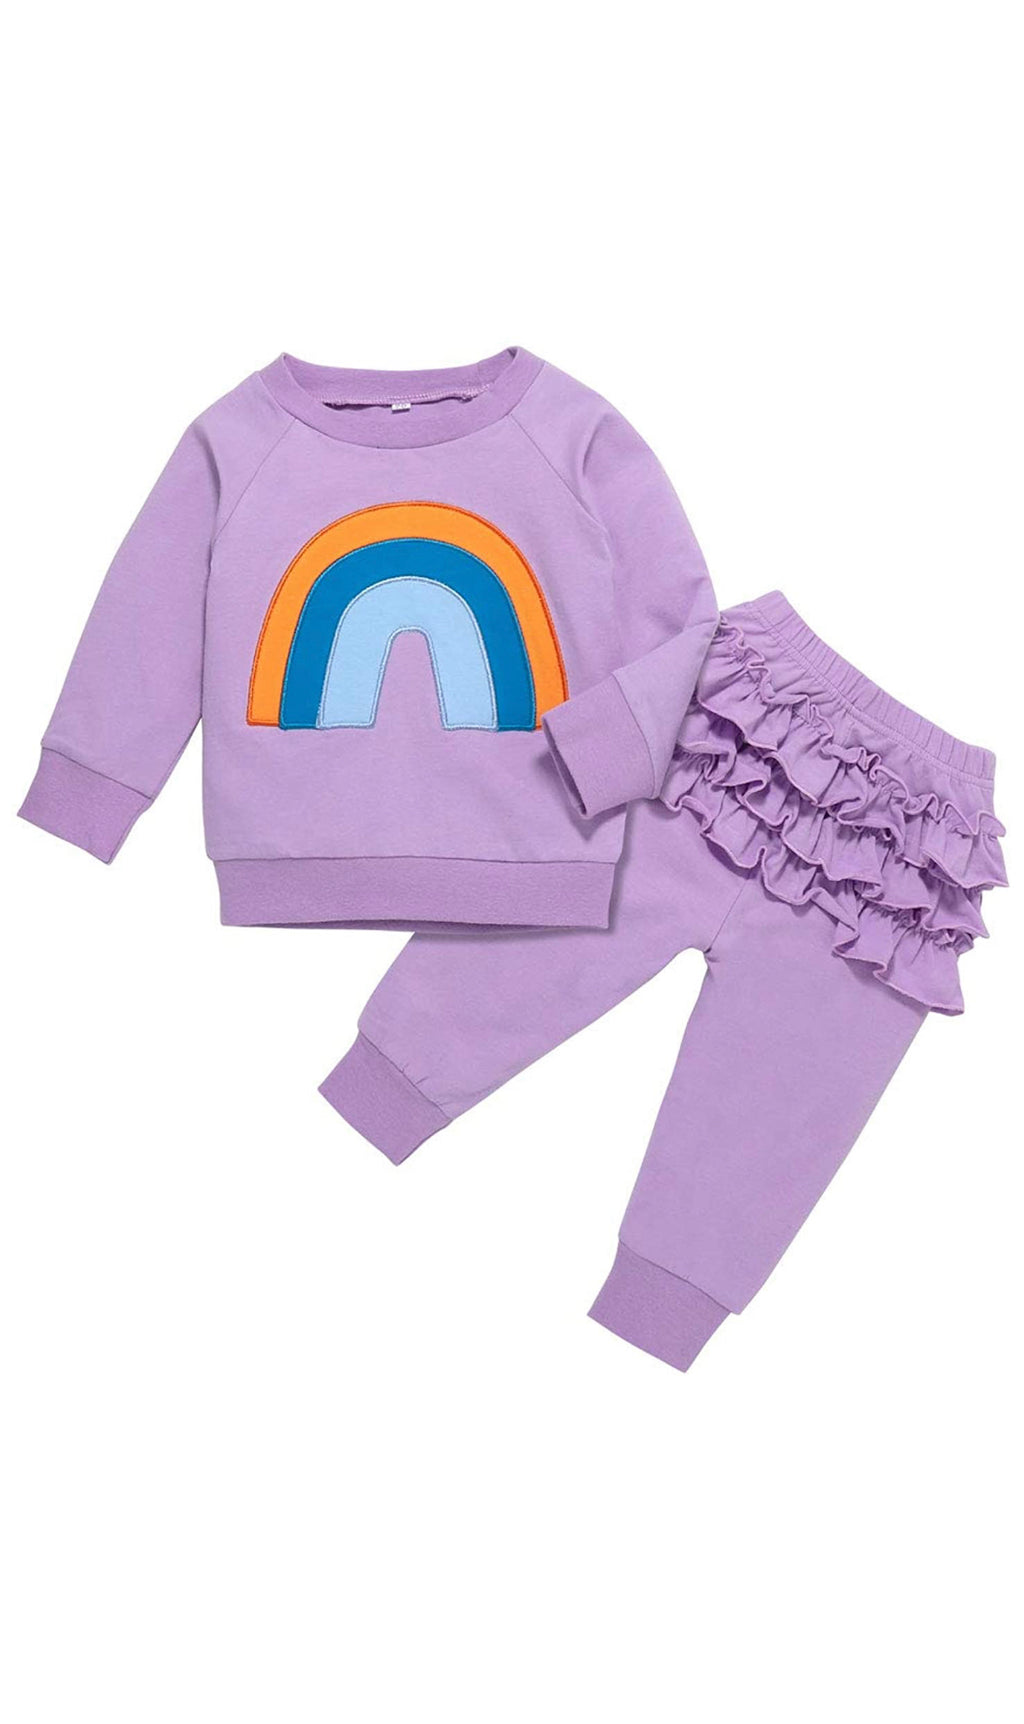 Rainbow Set - Purple